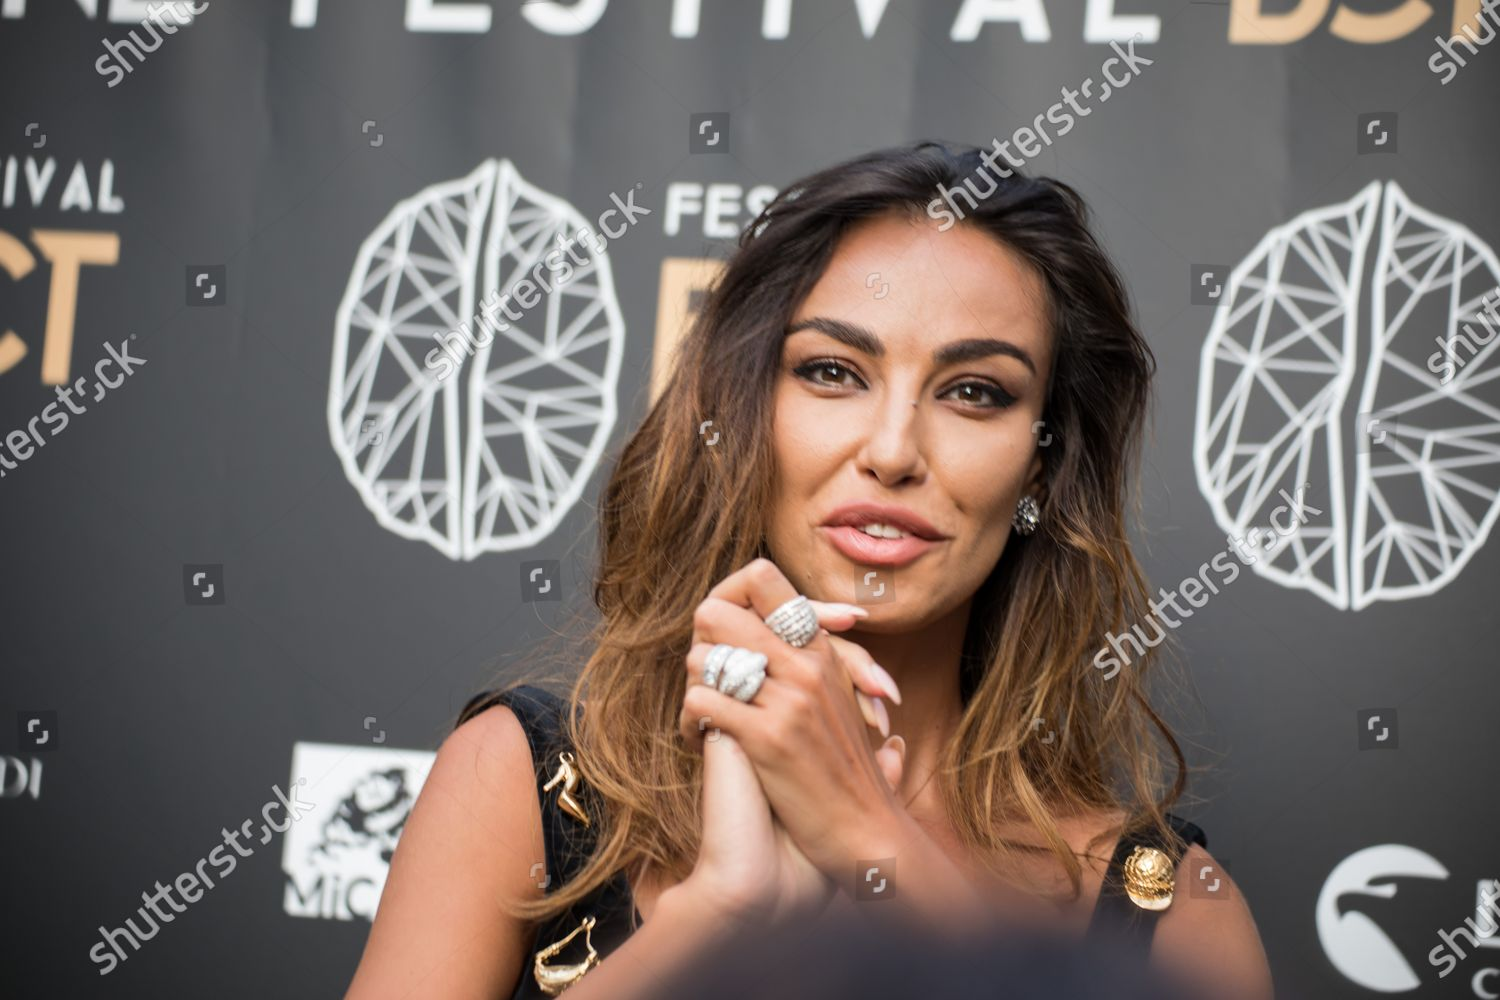 Stock photo of BCT National Film and Television Festival, Benevento, Italy - 22 Jun 2021